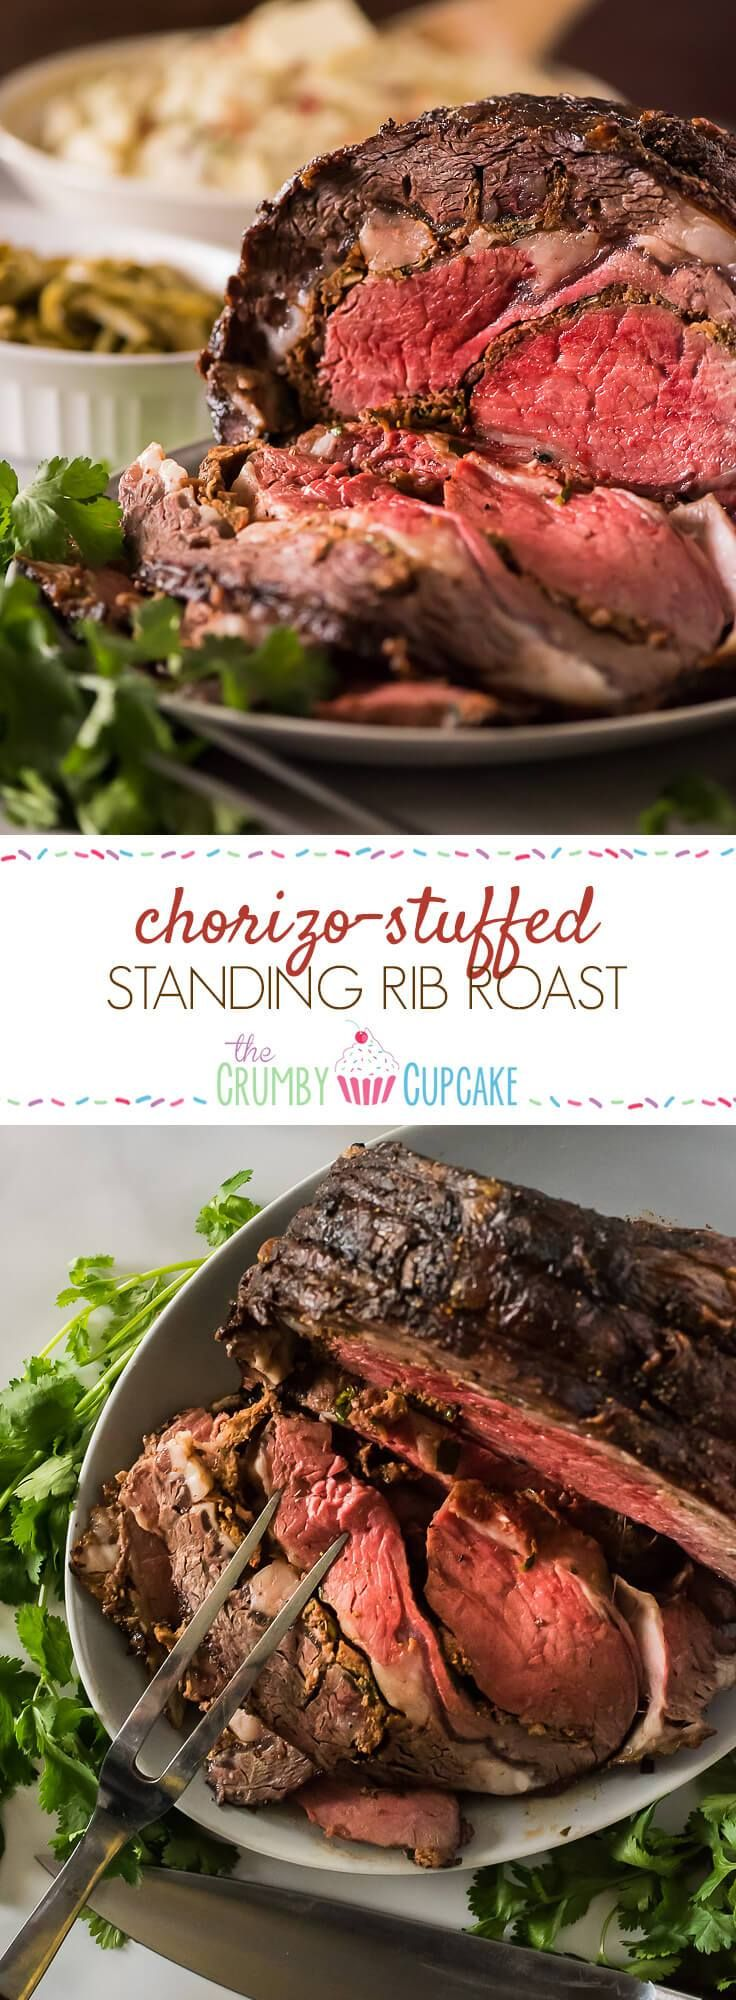 Thanksgiving dinner doesn't always have to be about a big, juicy bird! Take it easy on yourself and set a Latin-inspired Chorizo-Stuffed Standing Rib Roast on the table - it's guaranteed to impress!